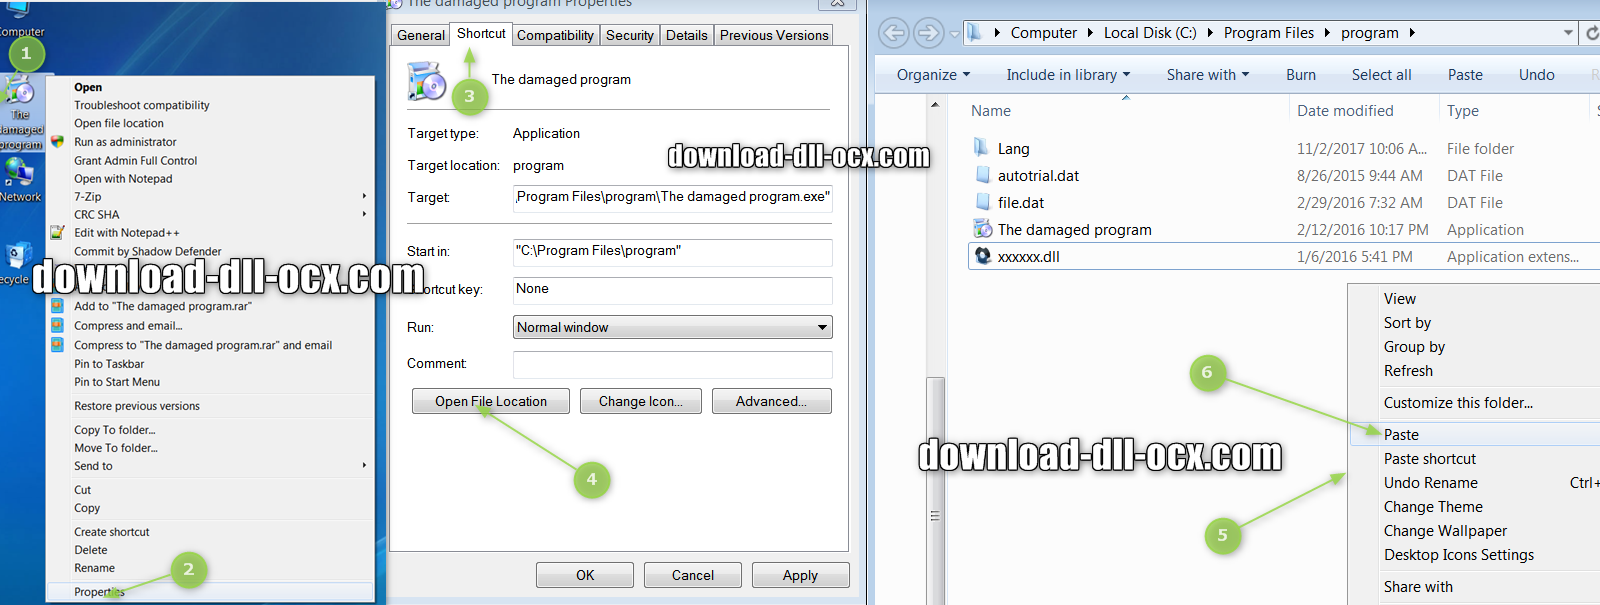 how to install sharedat.dll file? for fix missing